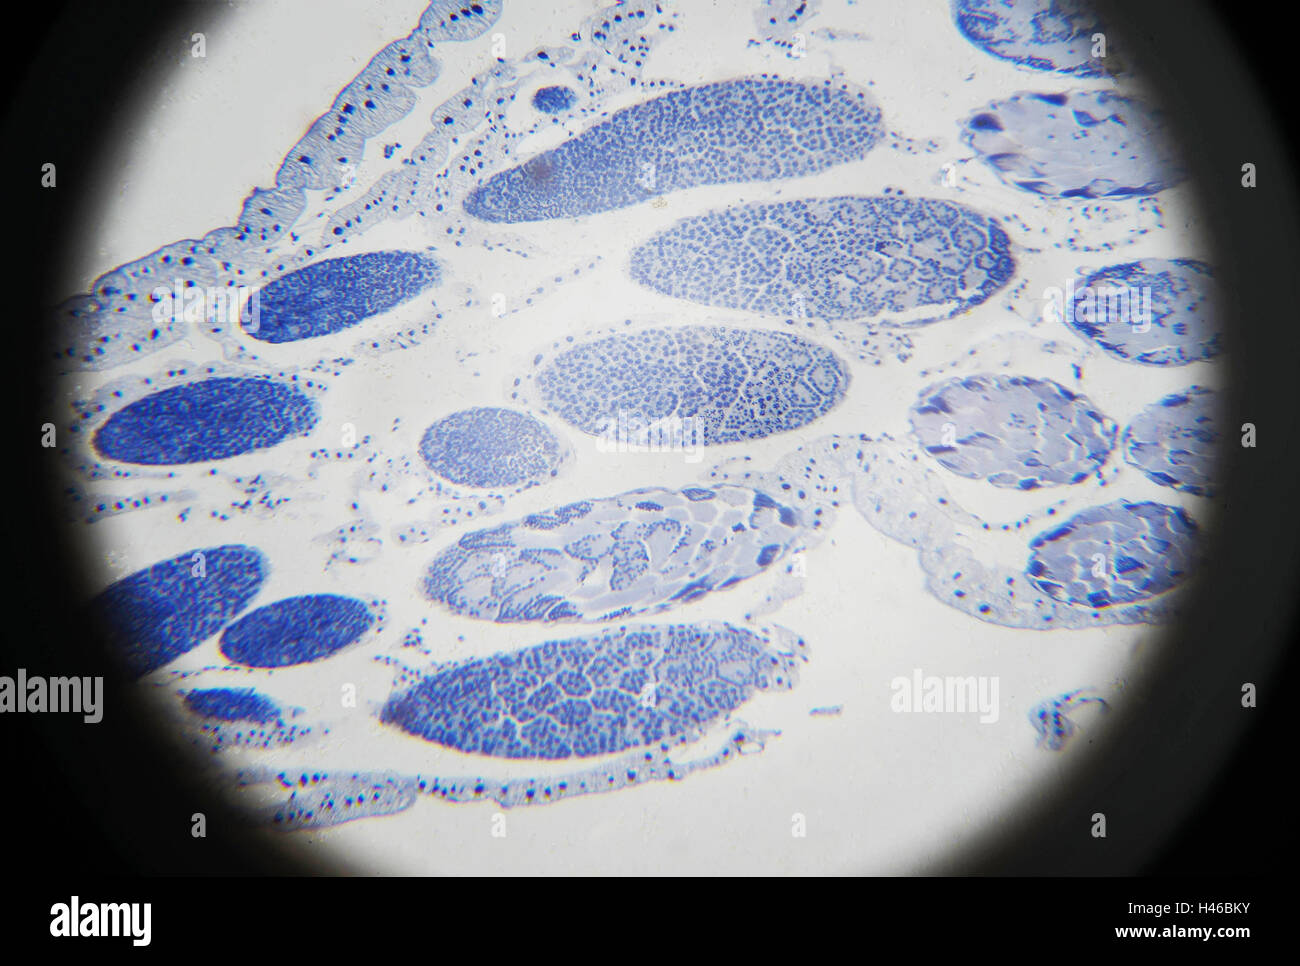 Grasshopper meiosis microscopic view - Stock Image